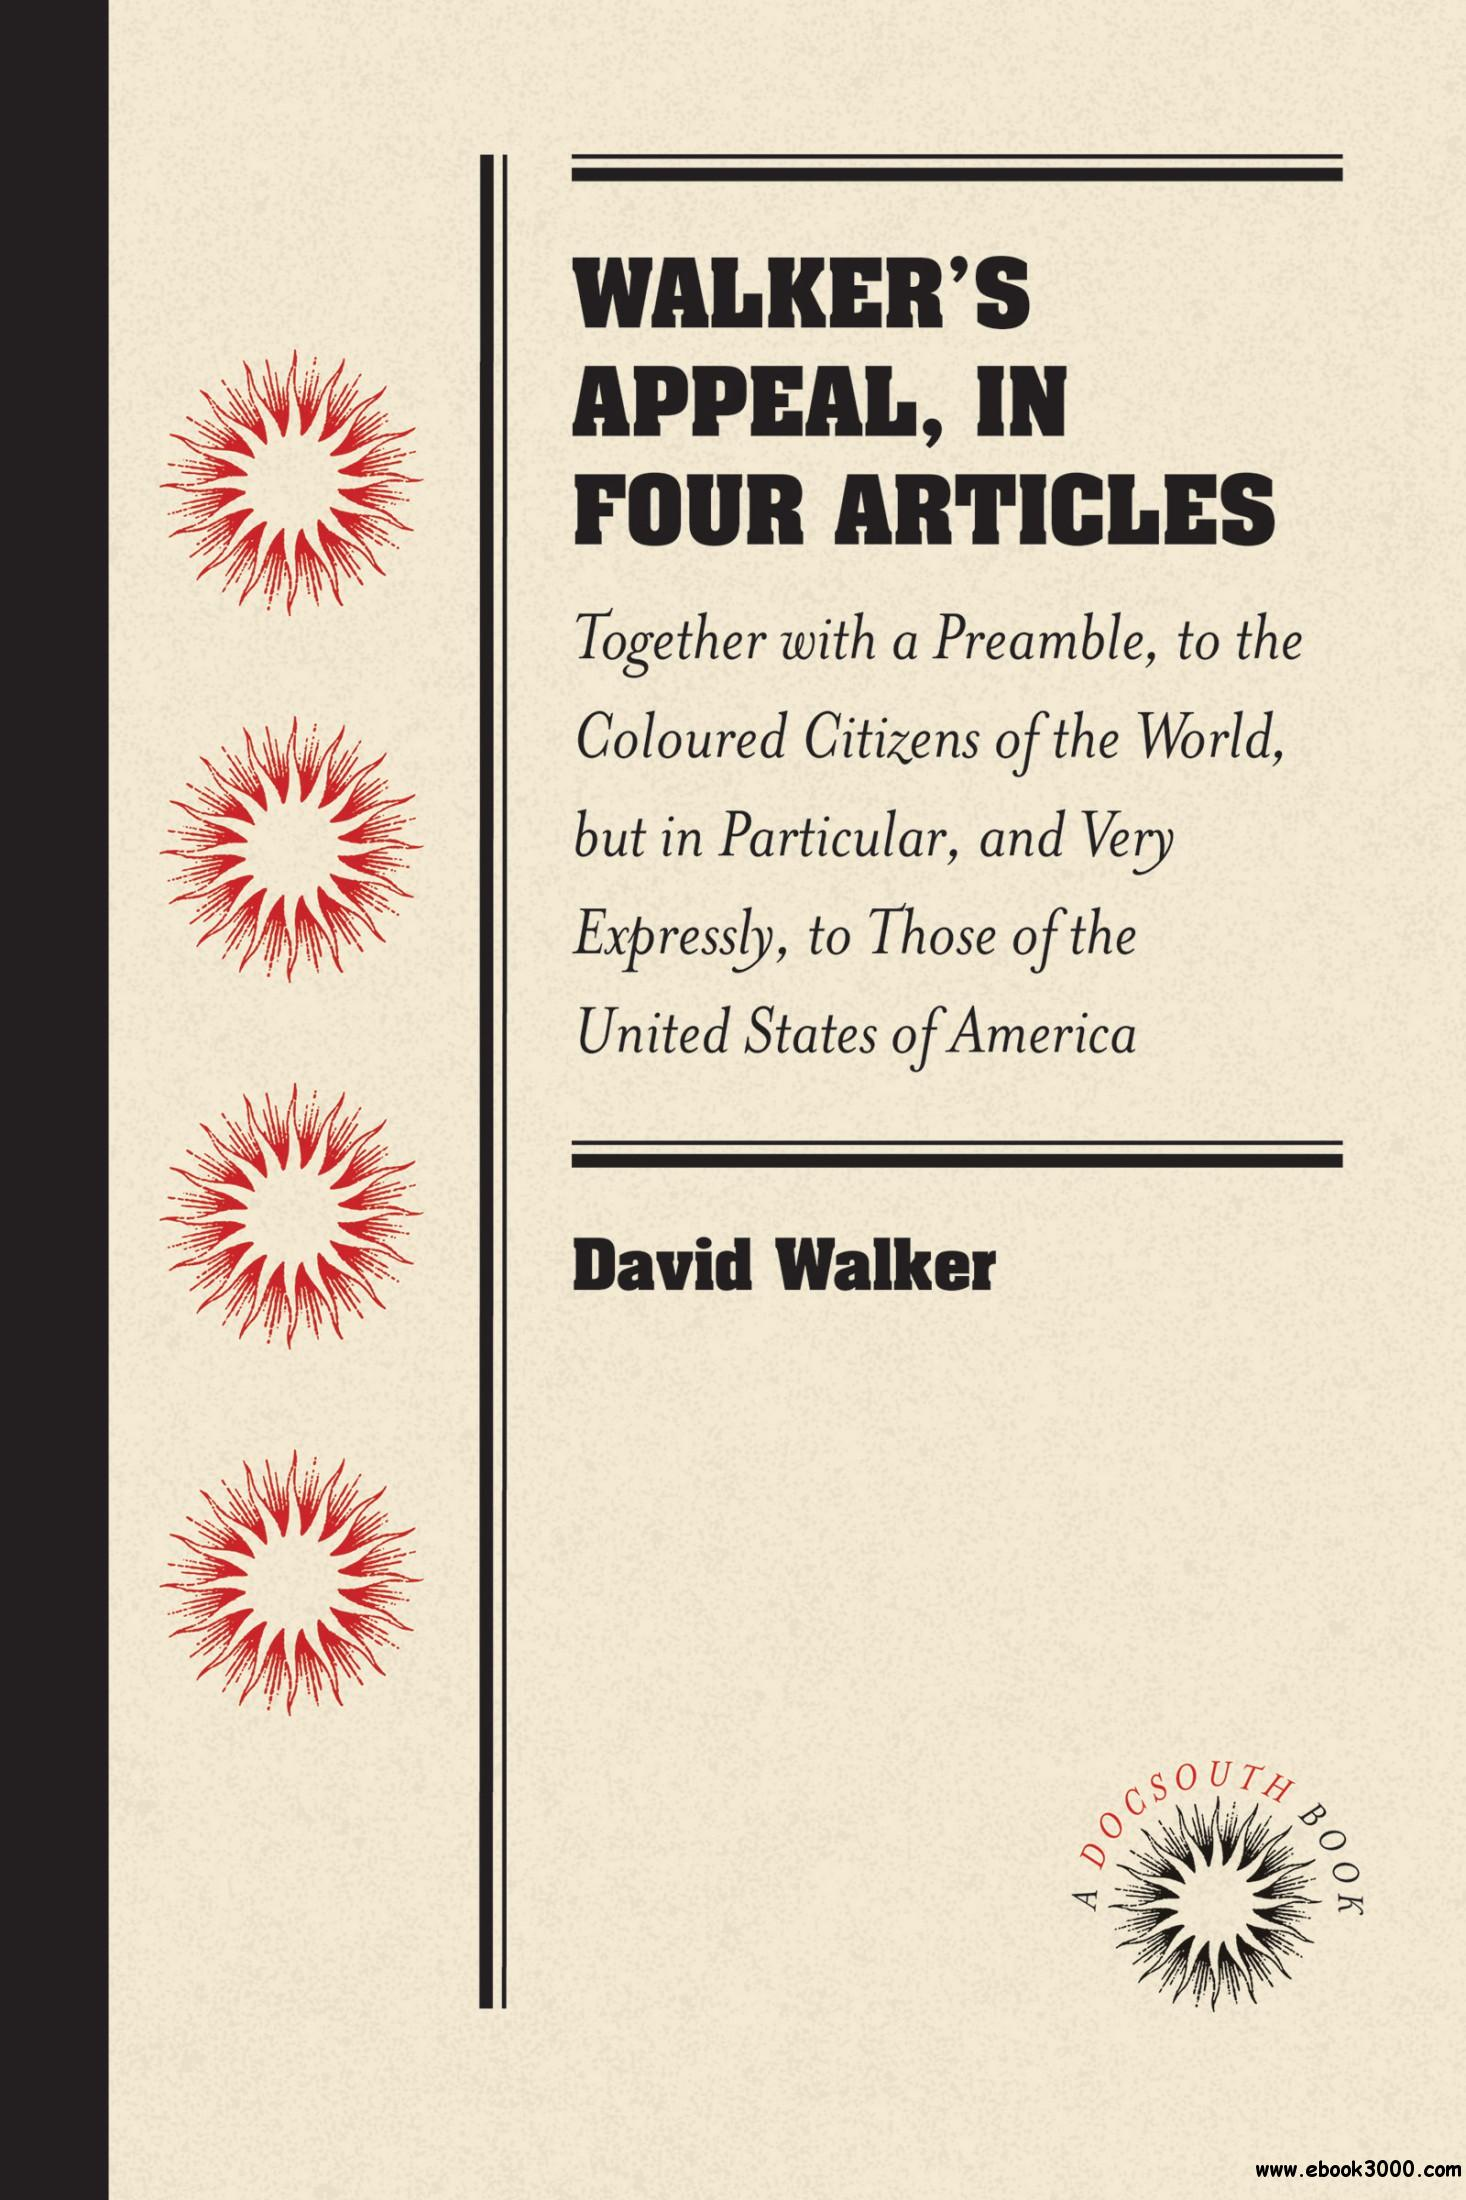 Walker's Appeal, in Four Articles: Together with a Preamble, to the Coloured Citizens of the World, but in Particular...